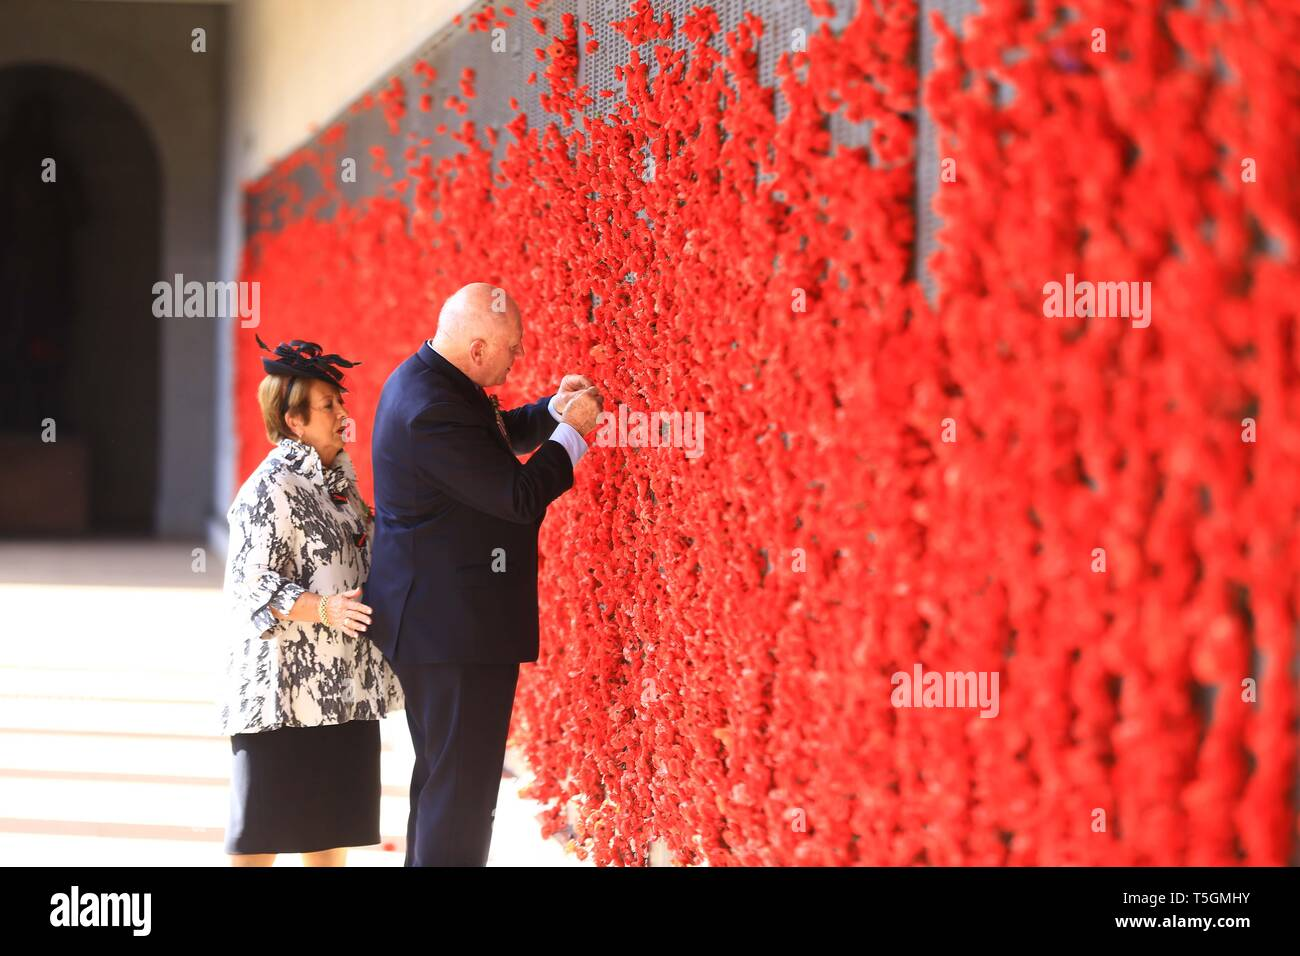 Canberra, Australia. 25th Apr, 2019. Australia's Governor-General Peter Cosgrove(R) takes part in an ANZAC Day ceremony at Australian War Memorial in Canberra, Australia, on April 25, 2019. Celebrated on April 25 every year, Anzac Day is Australia and New Zealand's national day of remembrance for the personnel who served and died in wars, conflicts and peacekeeping operations. Credit: Pan Xiangyue/Xinhua/Alamy Live News - Stock Image